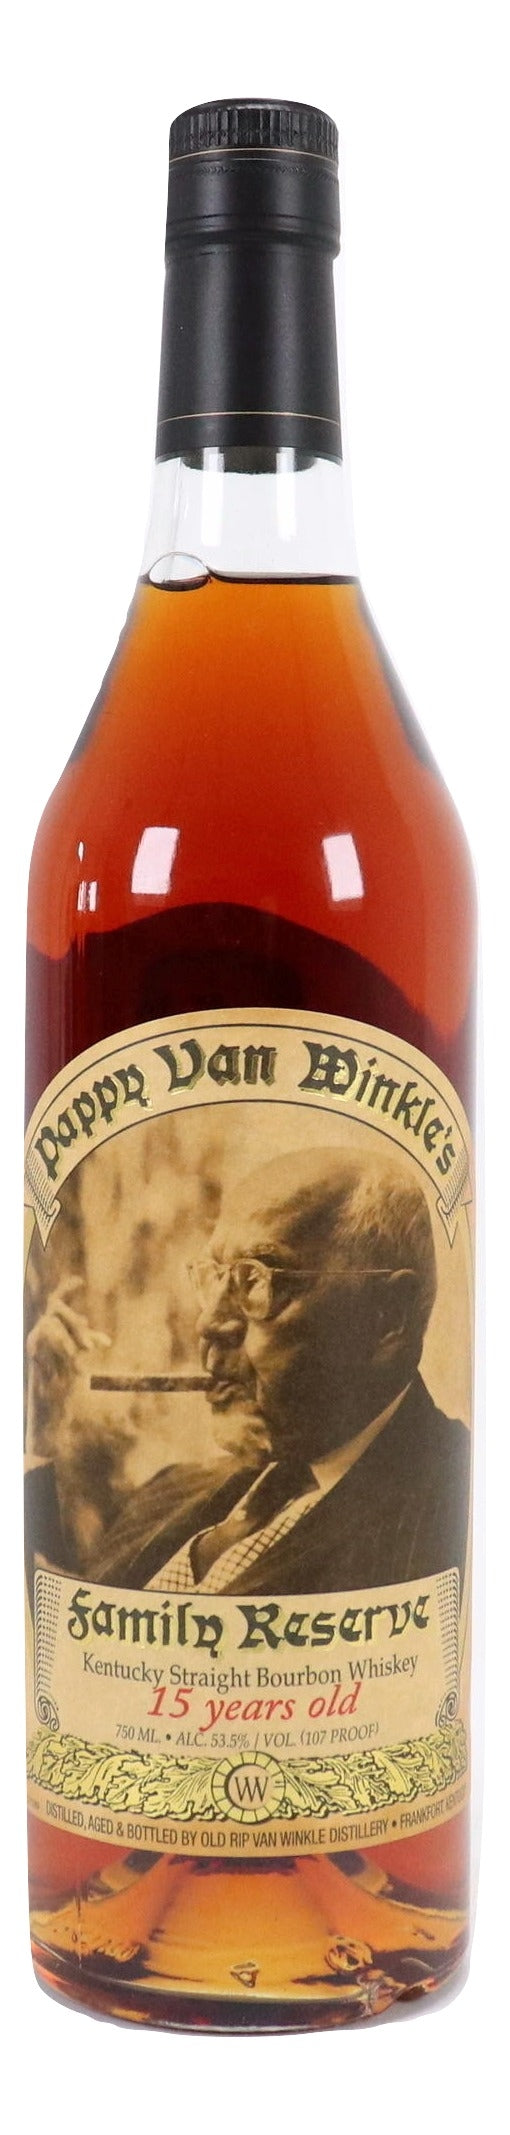 Pappy Van Winkle 15 Year Old Family Reserve - NativeSpiritsOnline